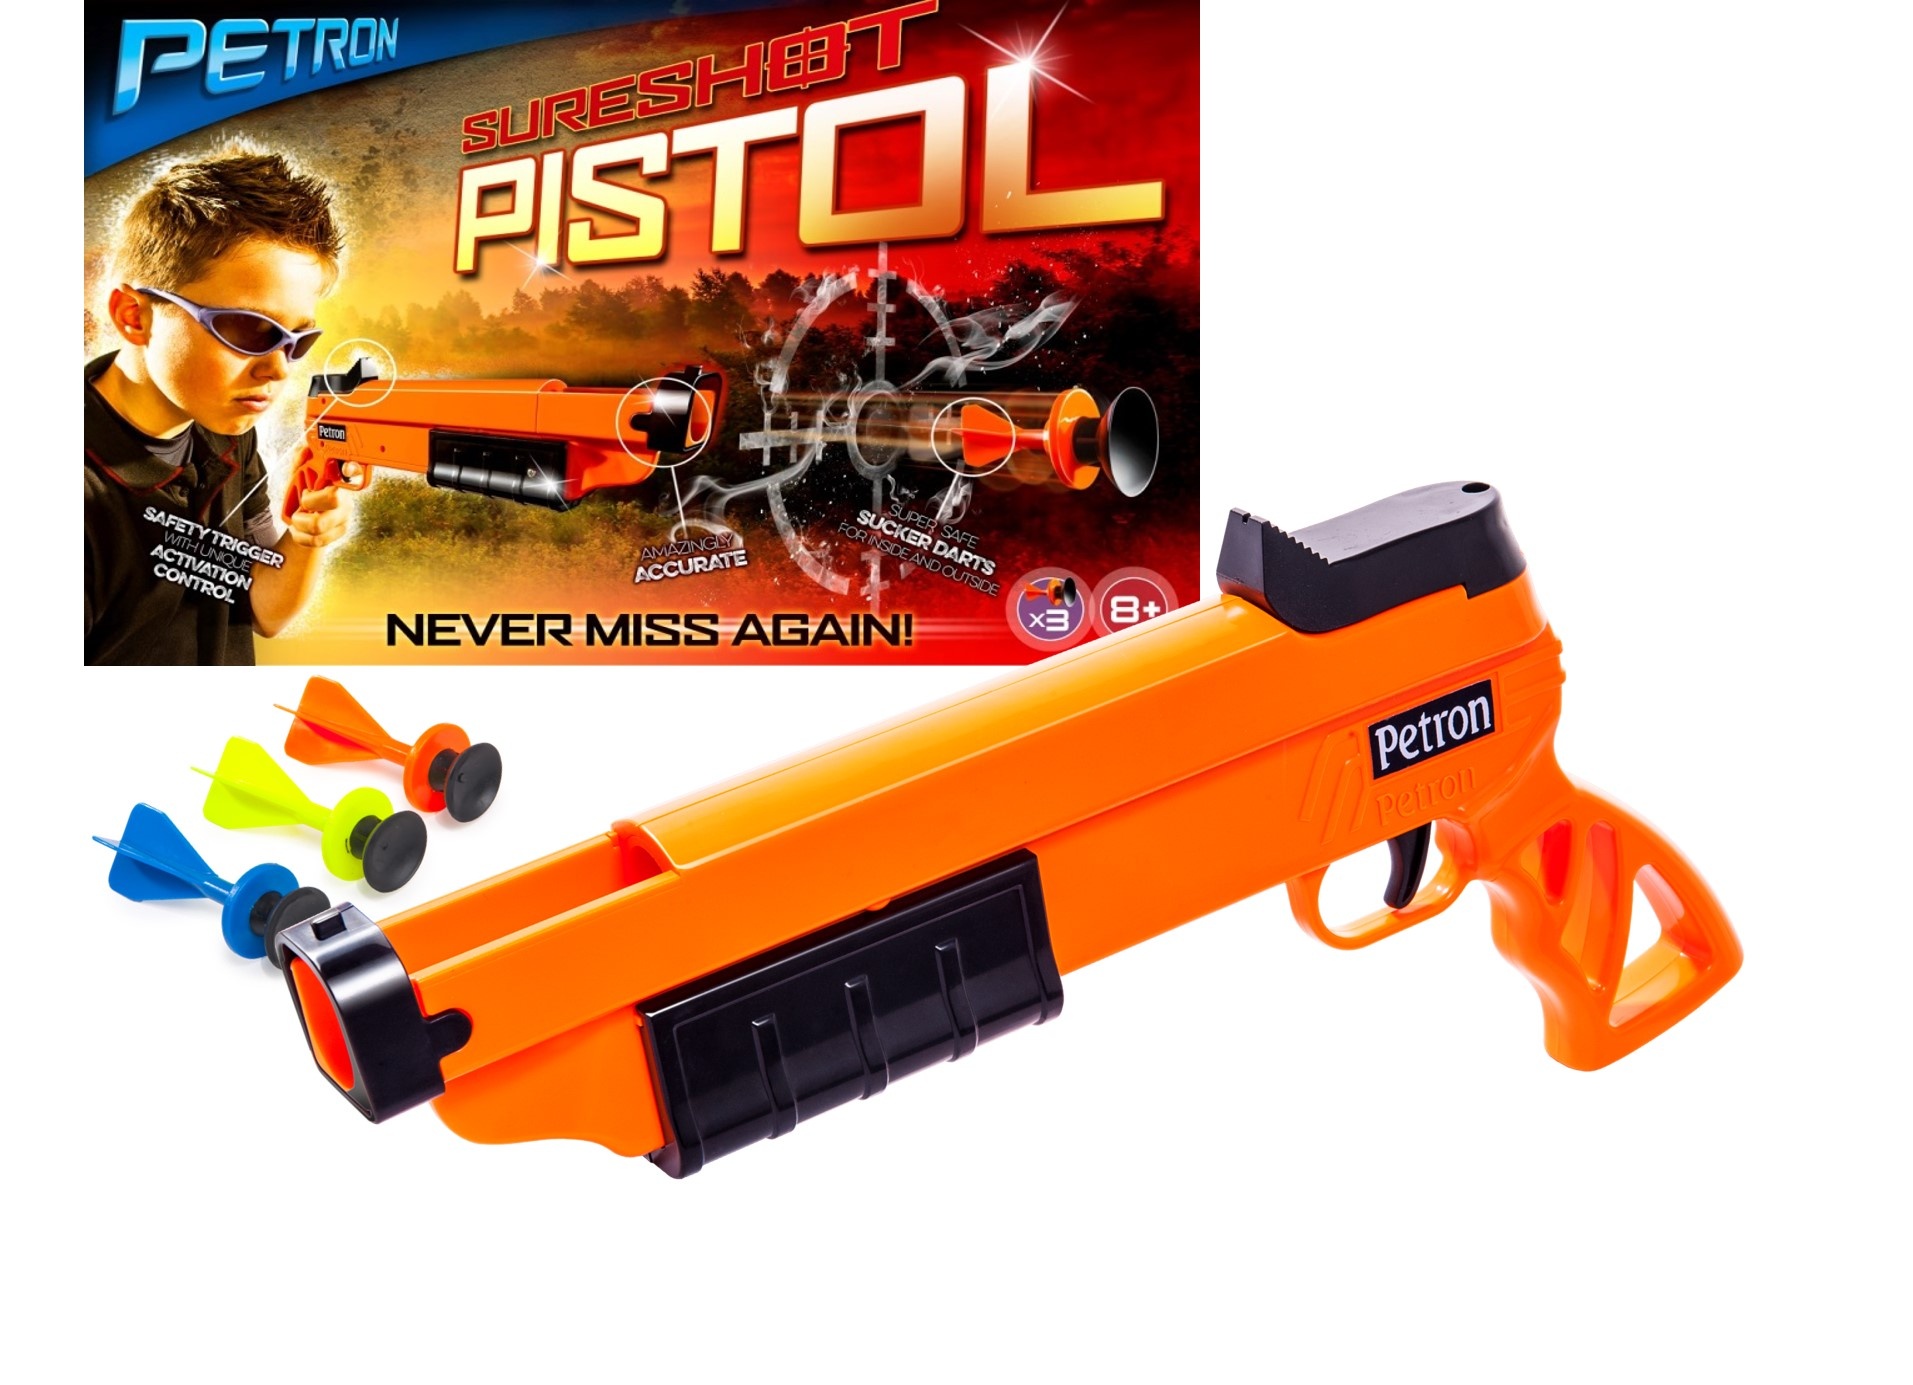 SURESHOT PISTOL PACKAGING AND PRODUCT JPEG-PISTOLET A FLECHETTES SURESHOT - PETRON - A56555